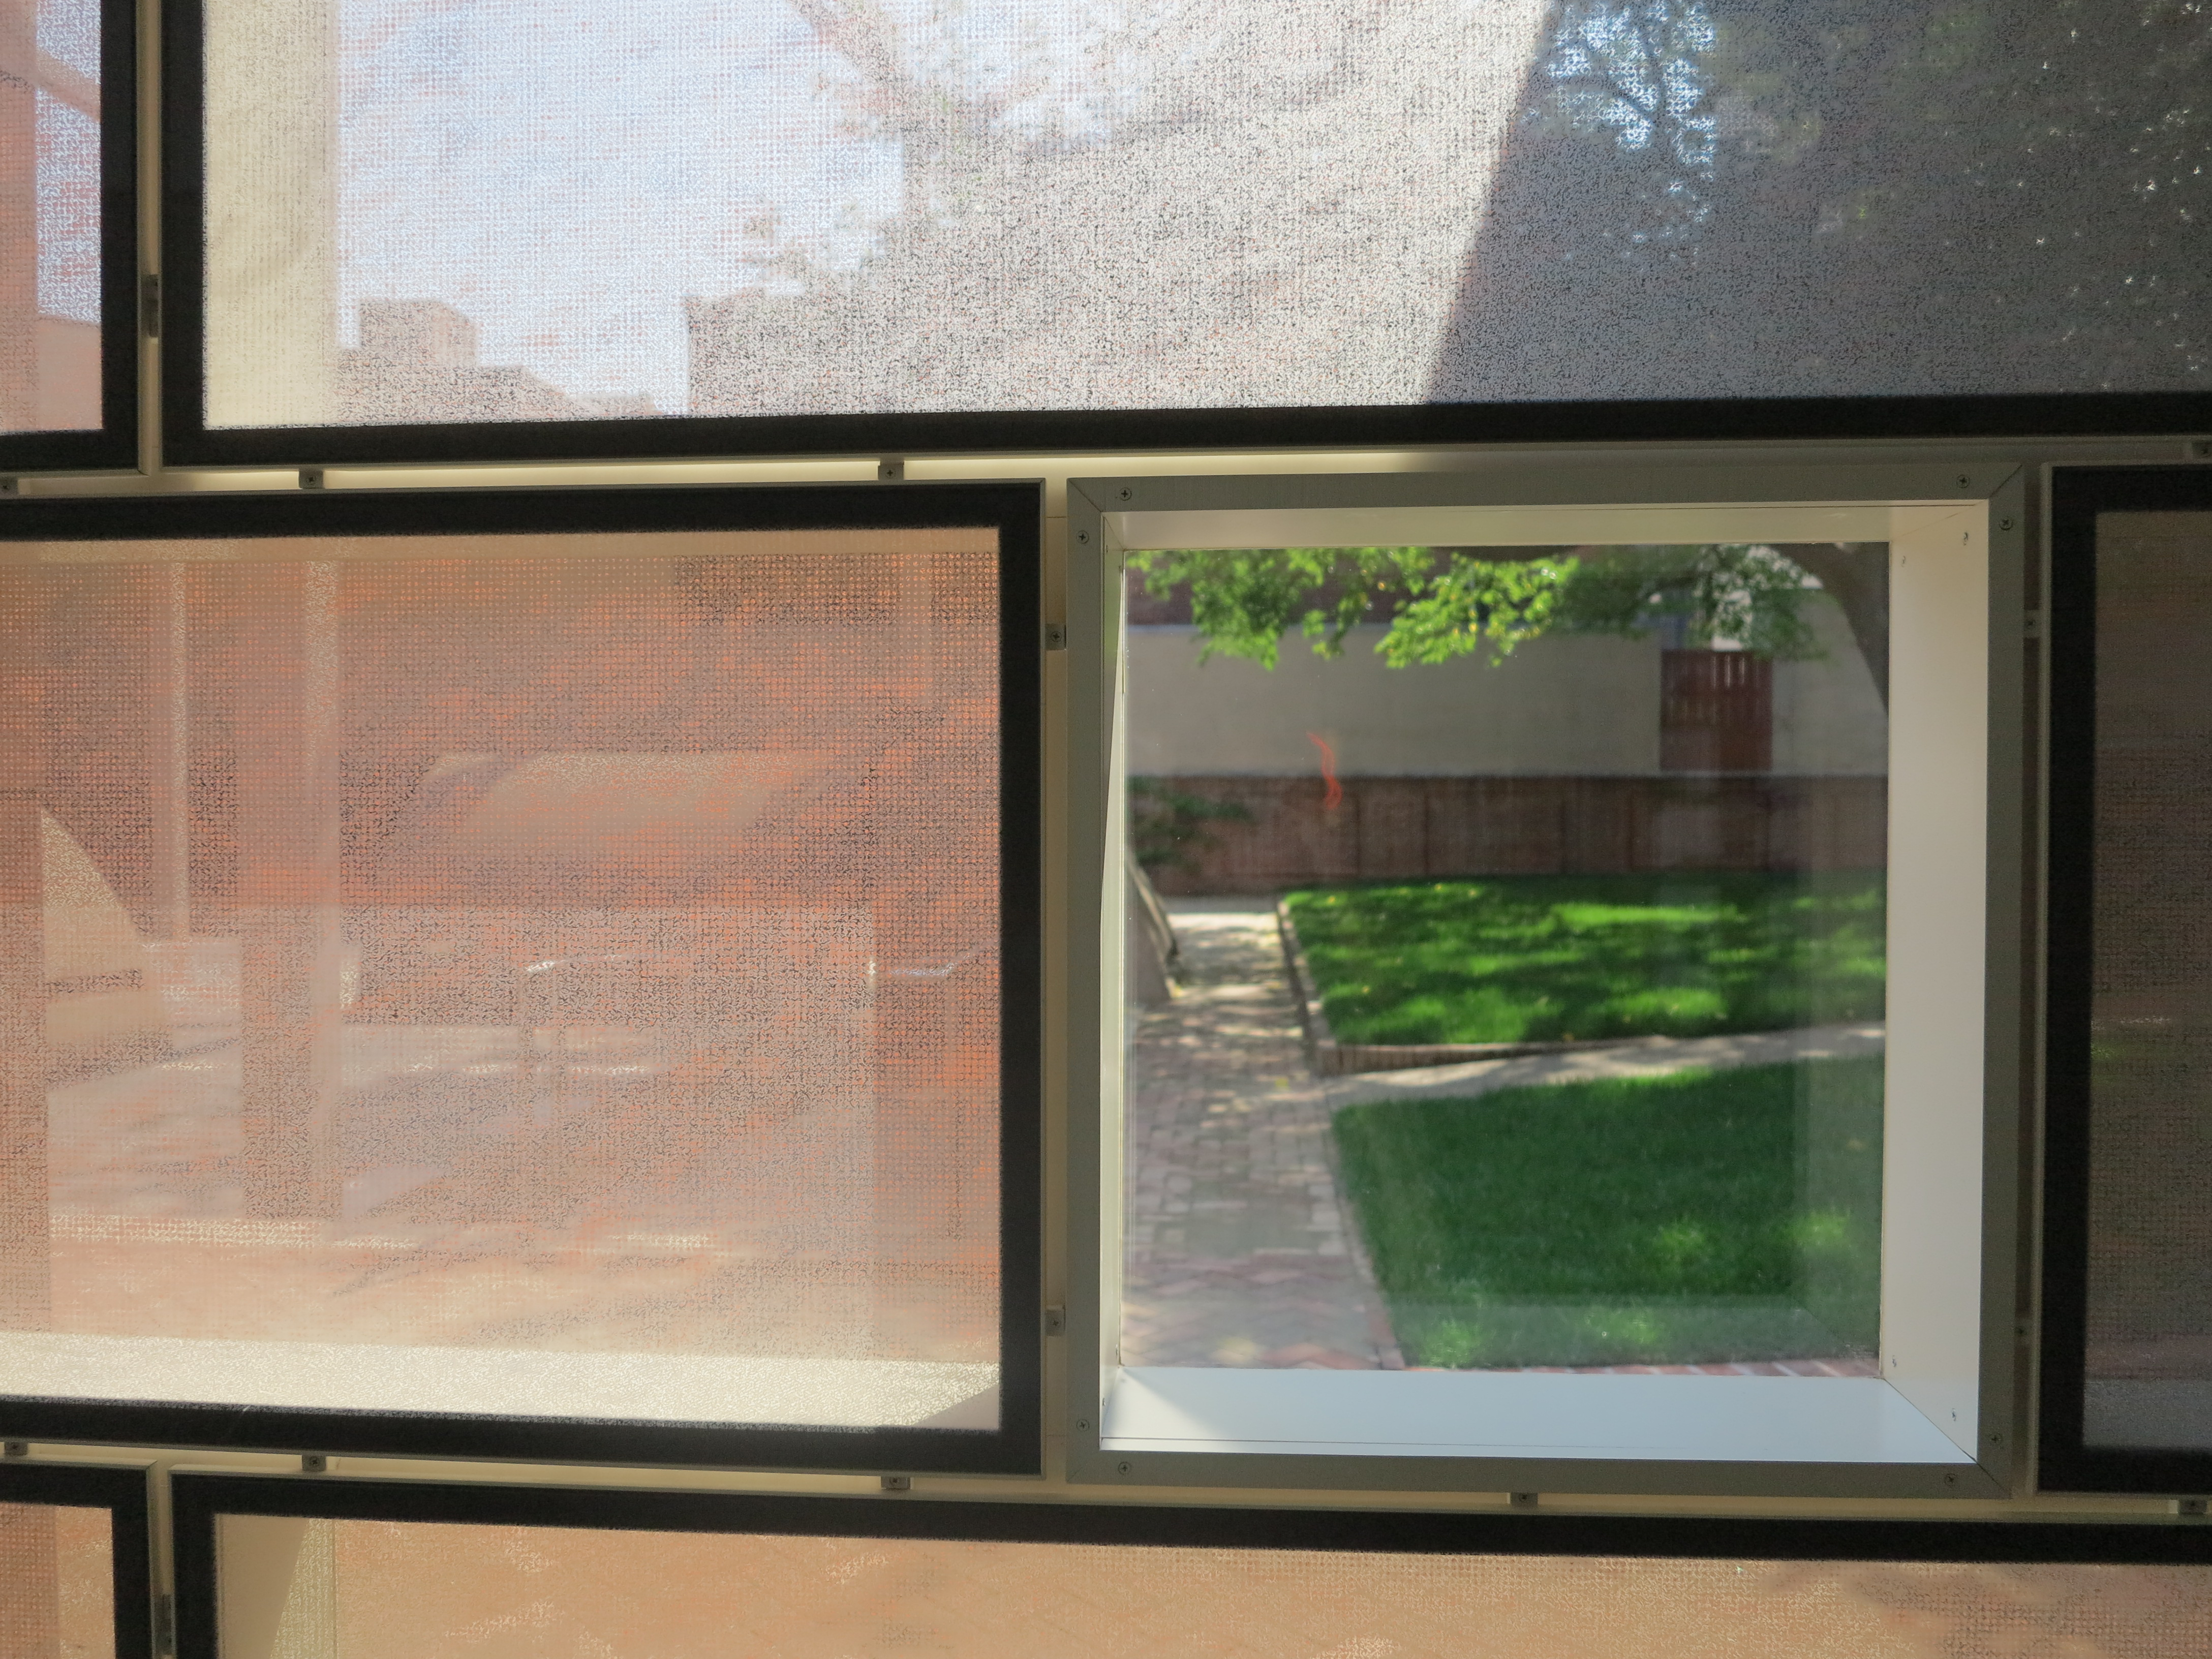 Looking through the fretted glass panels into Franklin Court.